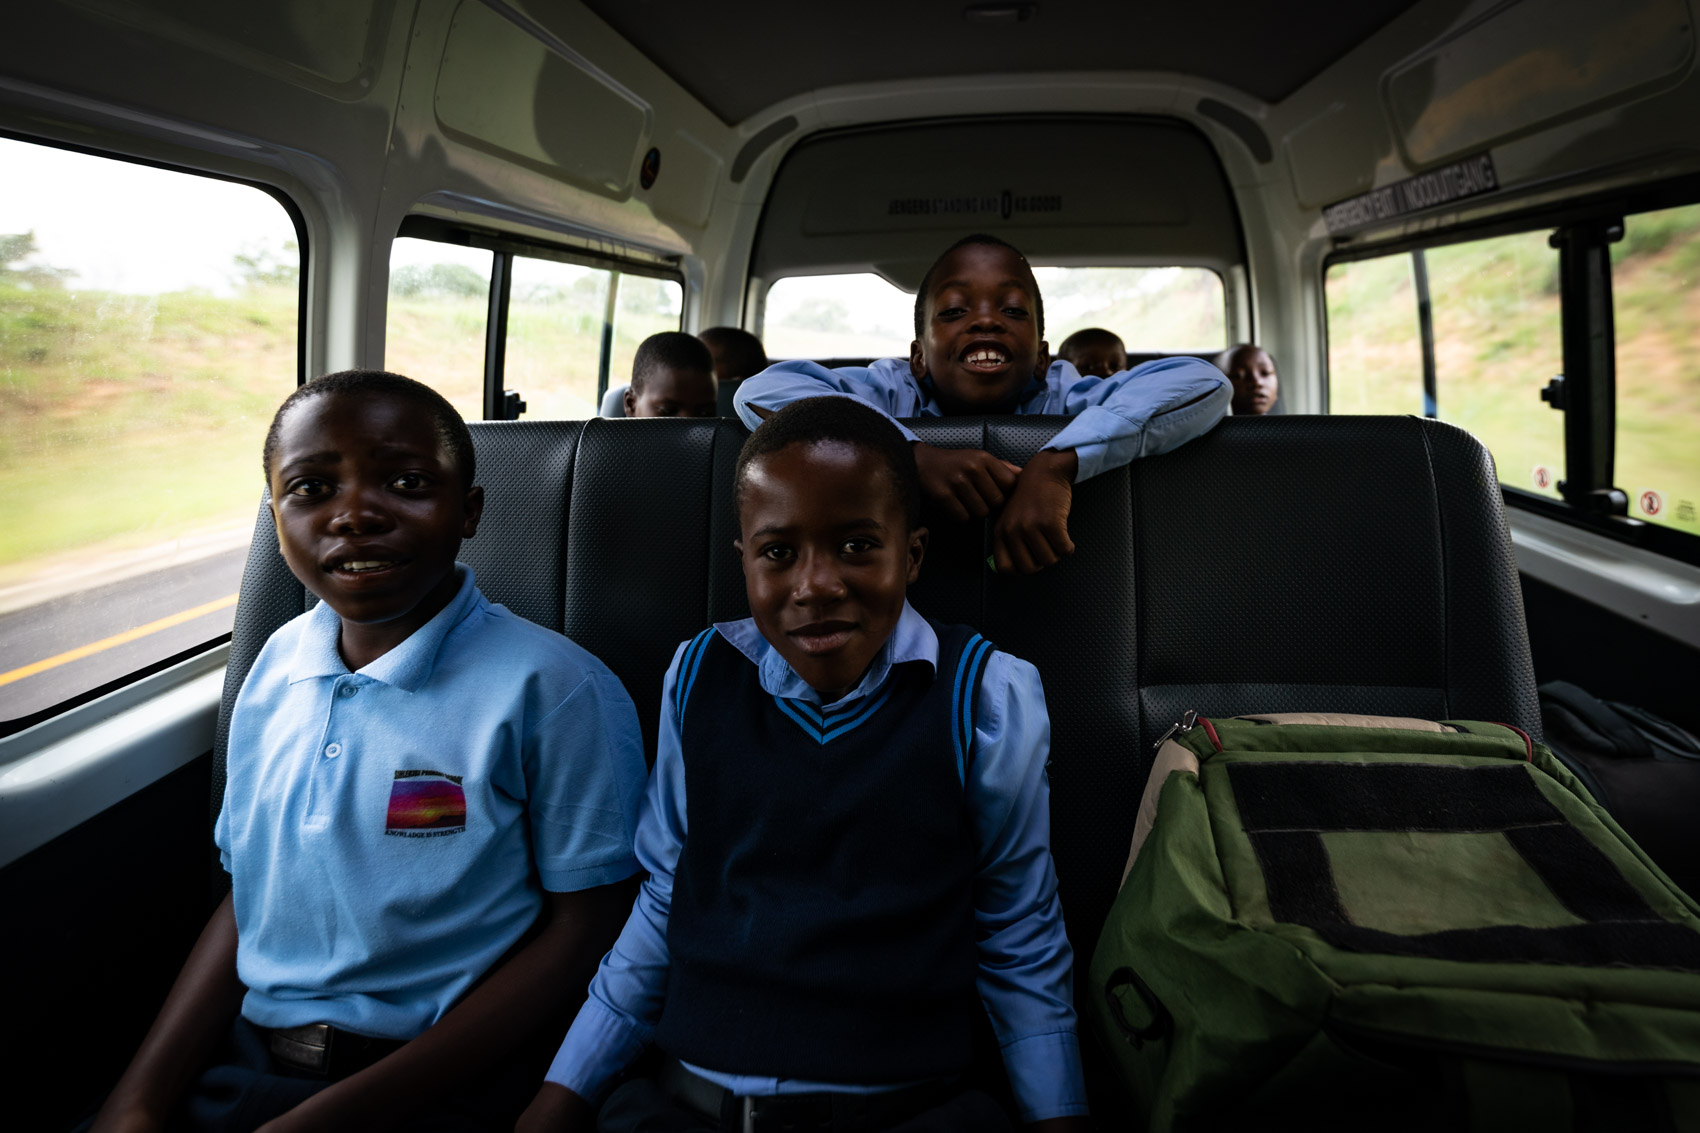 Three African school boys in a van in South Africa